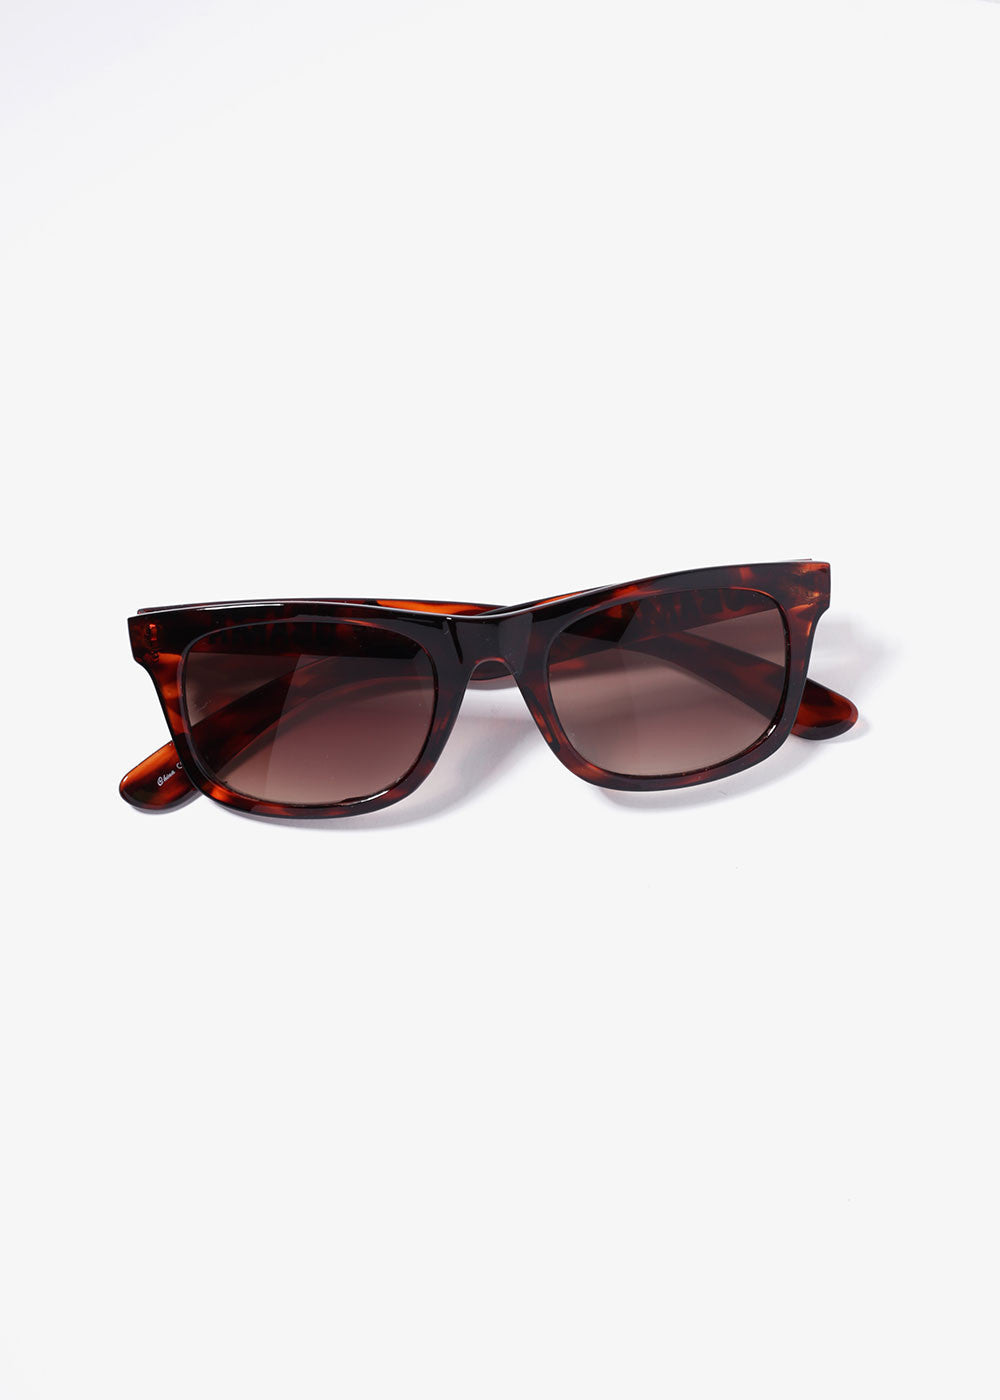 Obama Print Sunglasses- Tortoise